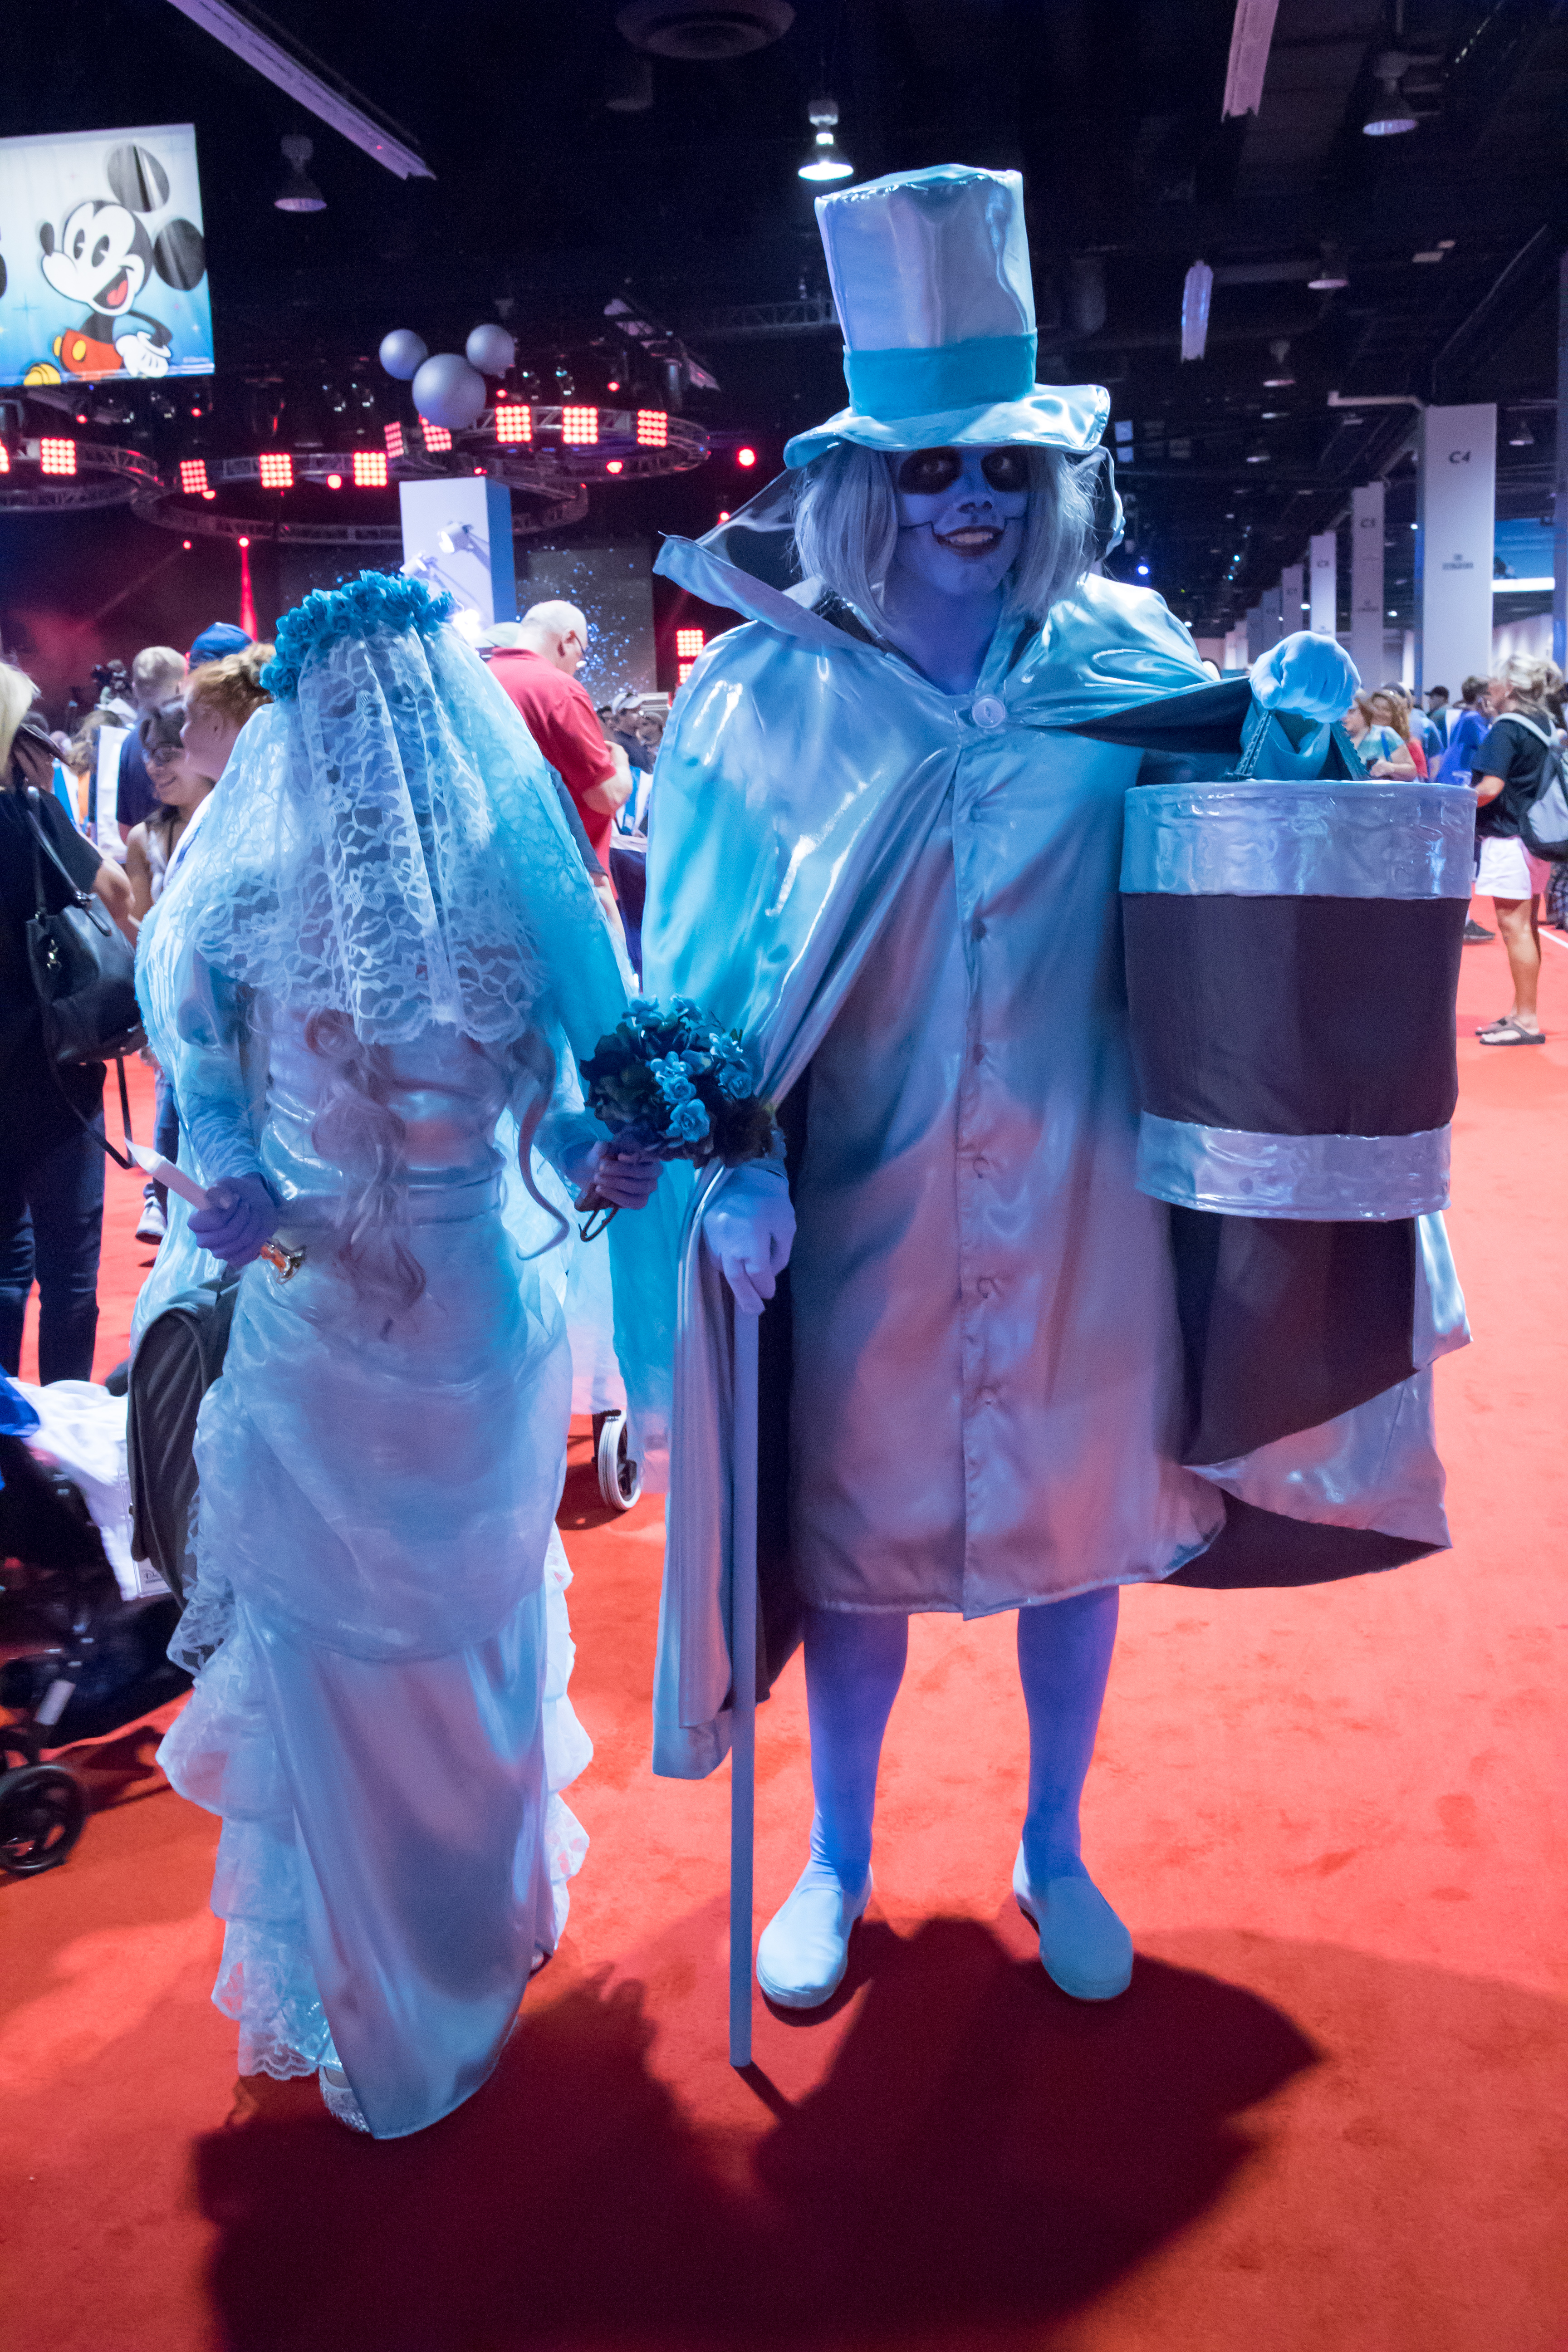 FileD23 Expo 2015 - Constance u0026 Hatbox Ghost (19995652973).jpg & File:D23 Expo 2015 - Constance u0026 Hatbox Ghost (19995652973).jpg ...